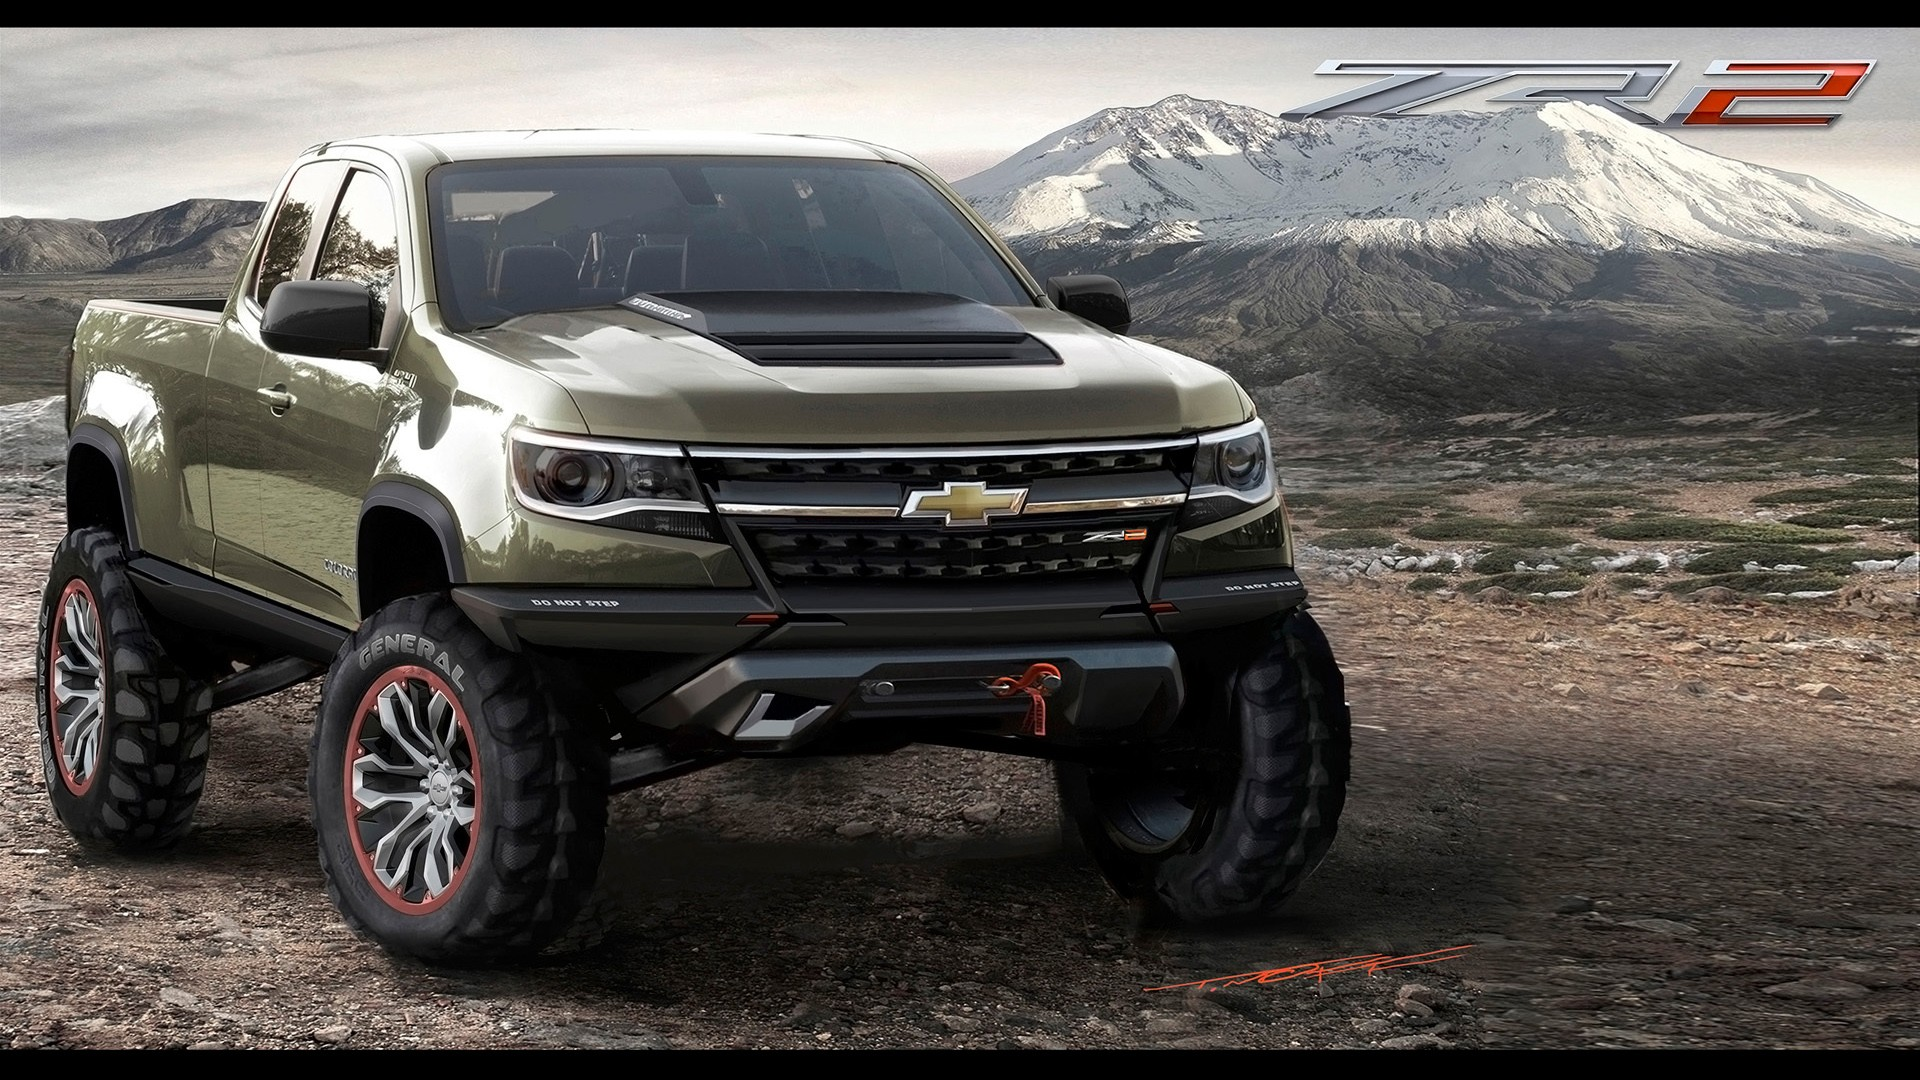 2014 Chevrolet Colorado ZR2 Concept Wallpaper | HD Car ...